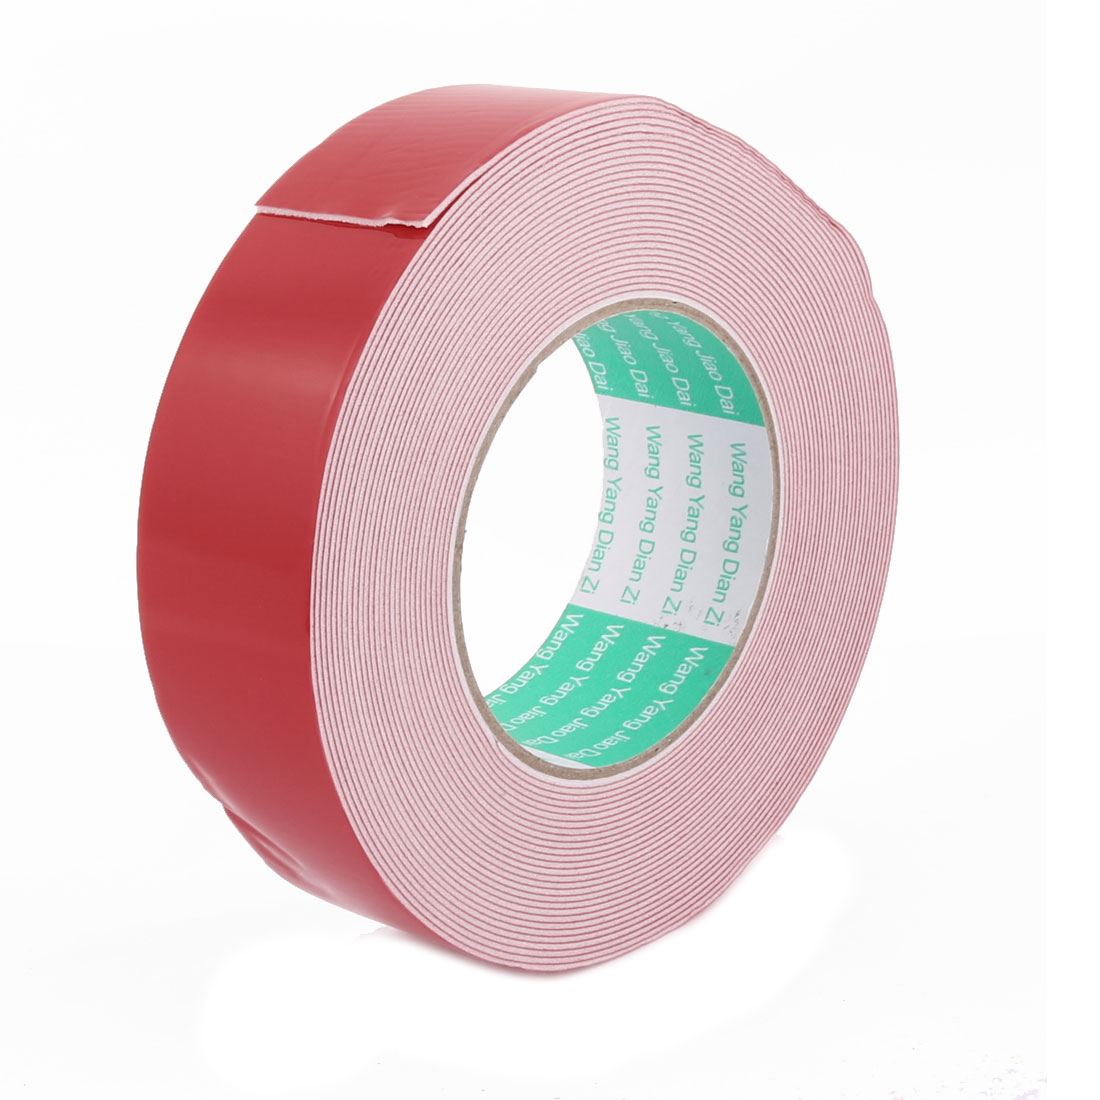 40MM Width 10M Long 1MM Thick Red Dual Sided Waterproof Sponge Tape for Car